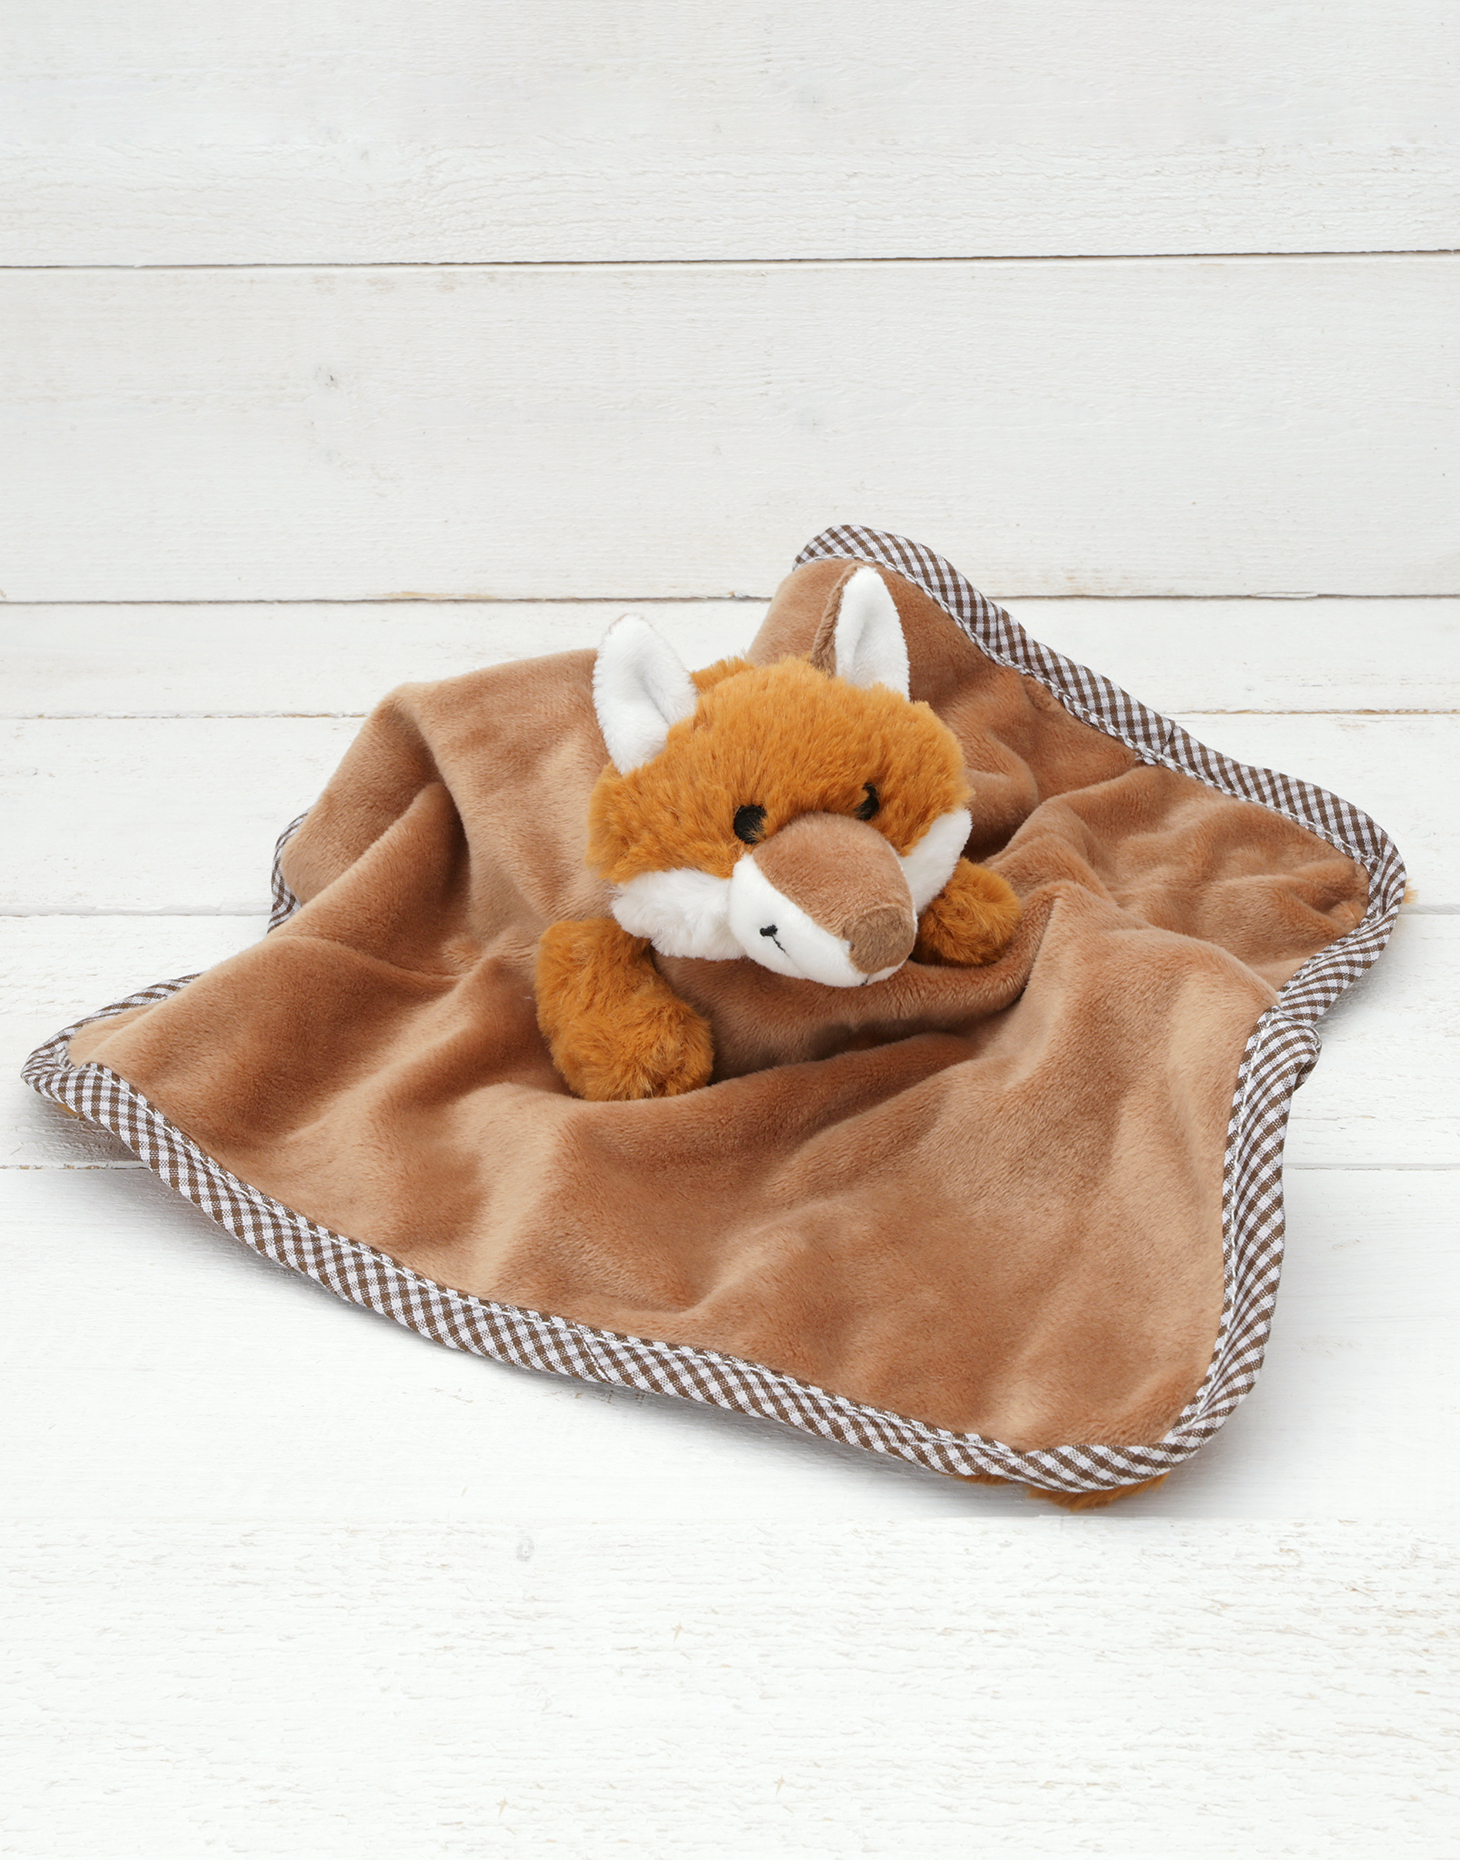 FOX SOOTHER/FINGER PUPPET JOMANDA